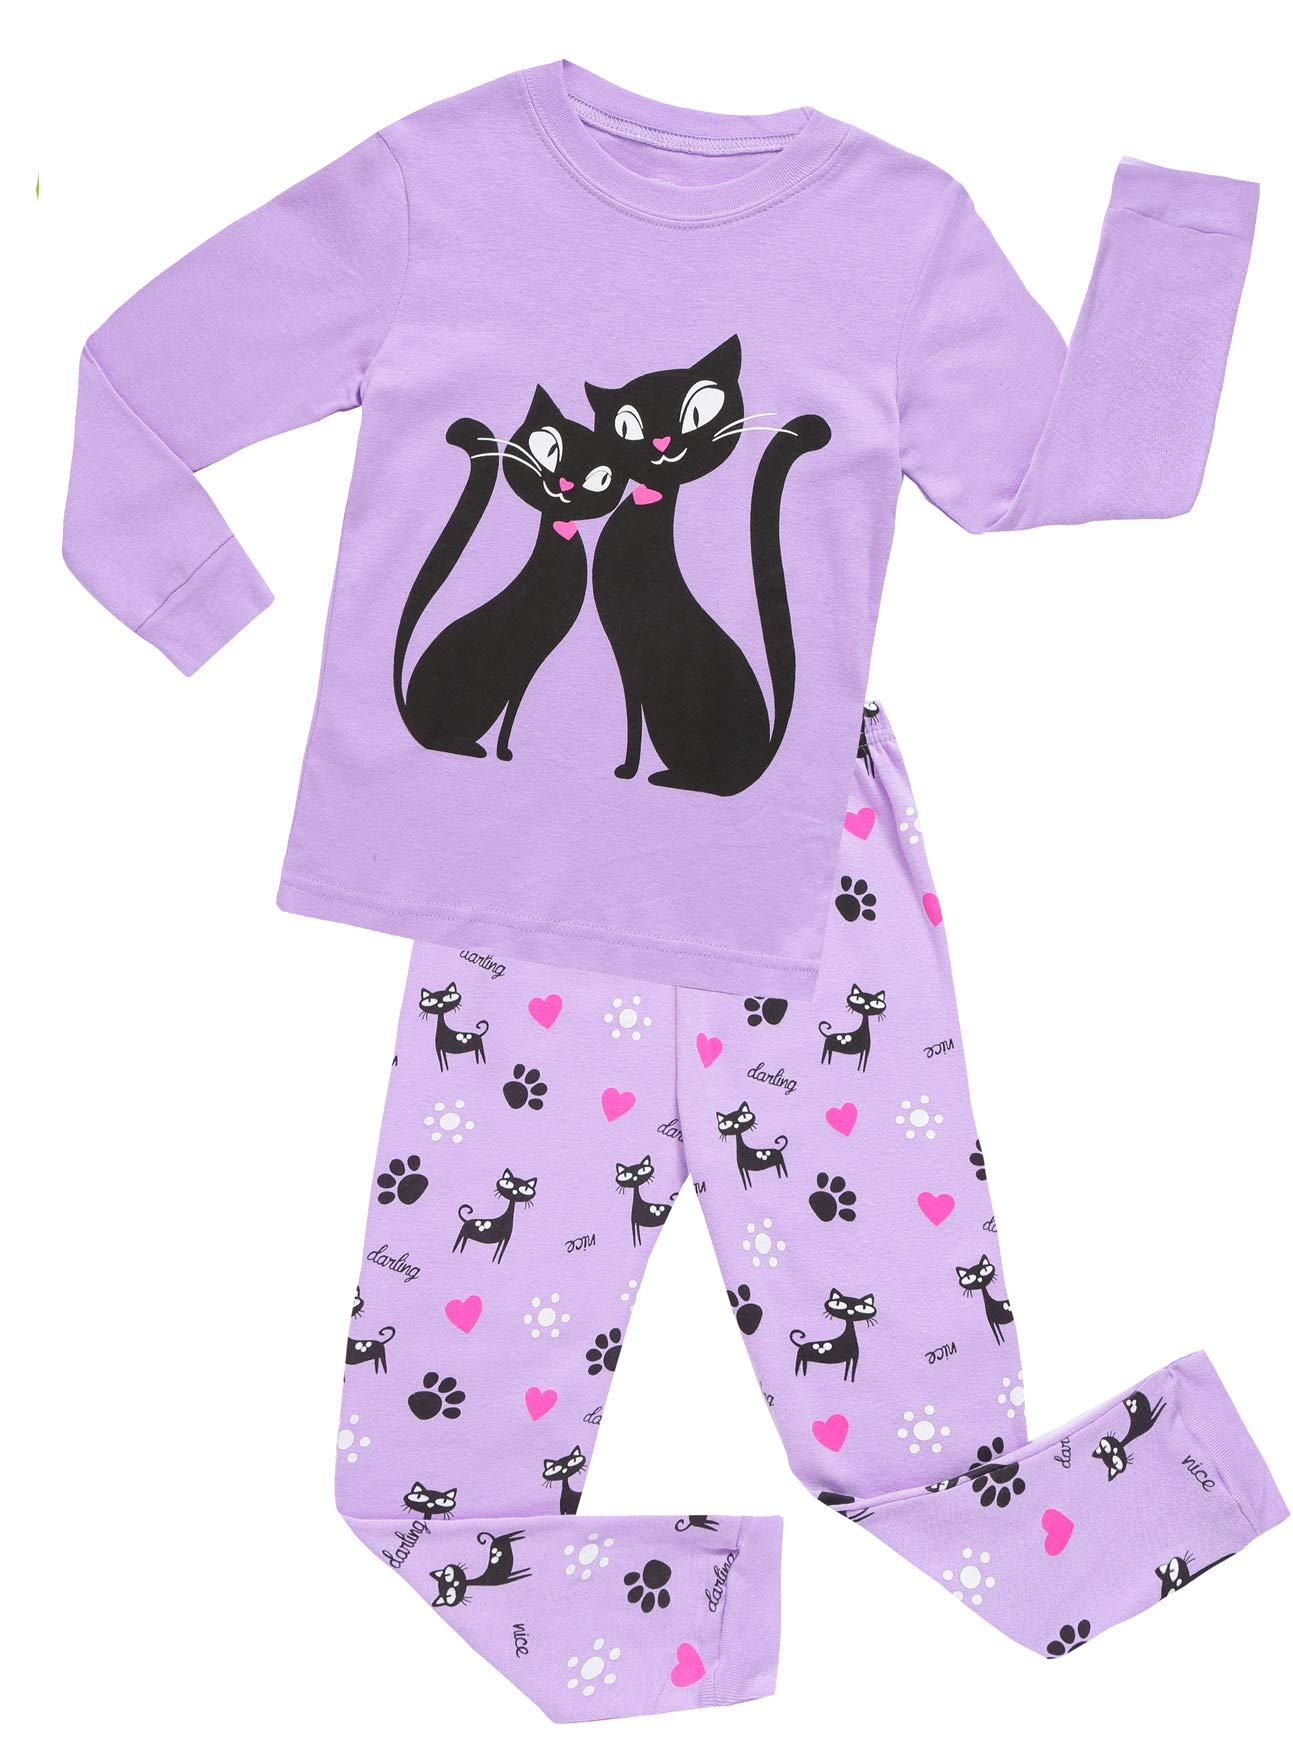 Girls Pajamas Clothes Sleepwear 100% Cotton PJS for Toddlers Children Kids Cat Style Purple